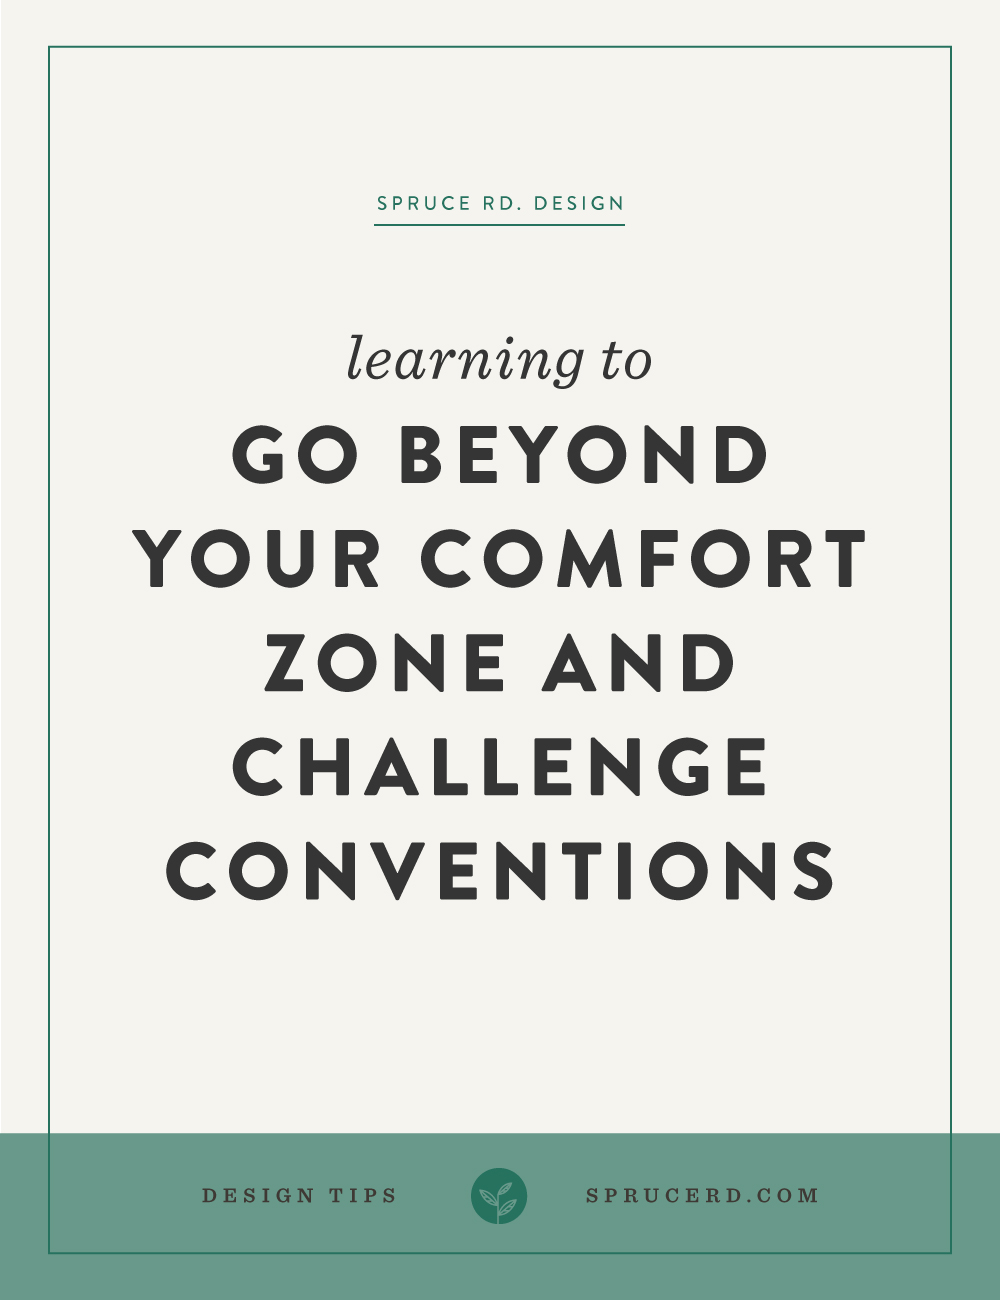 Go beyond your comfort zone and challenge conventions | Spruce Rd. part 3 of the Enduring brand series. Learn to create your own process, niche your services and challenge the conventions.